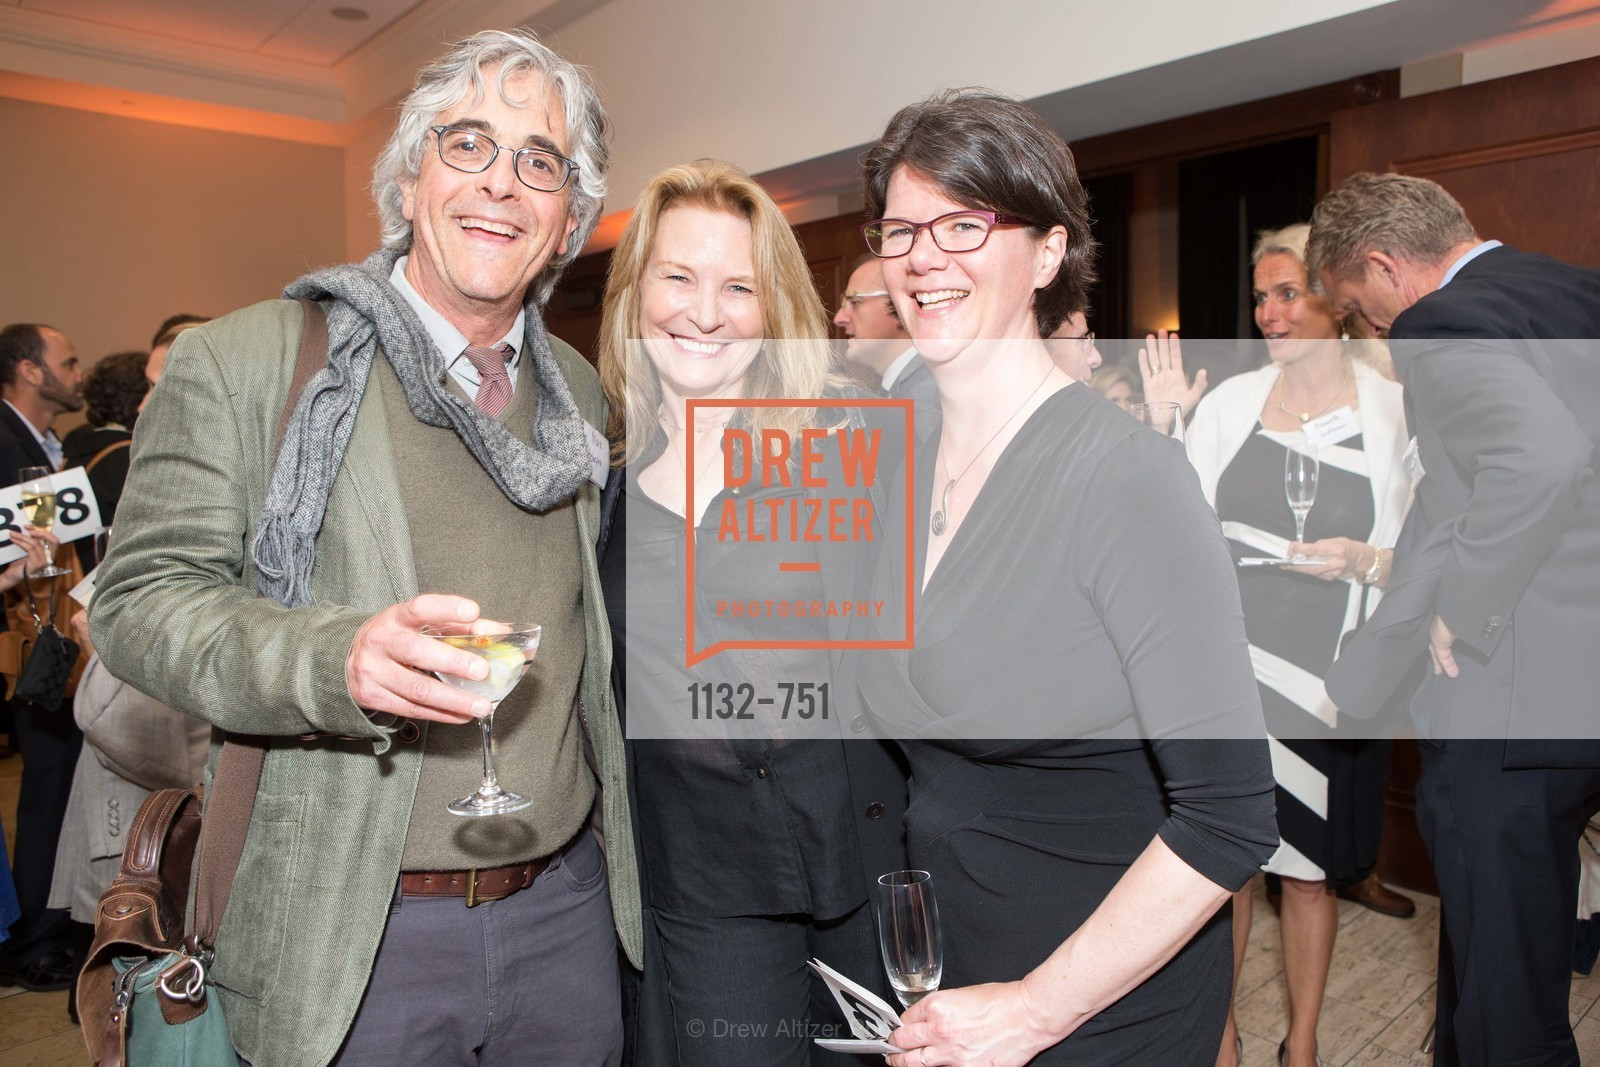 Mark Schafiro, Anna Hawken, Jennifer Krill, CENTER FOR ENVIRONMENTAL HEALTH (CEH) 2015 Gala, US, May 28th, 2015,Drew Altizer, Drew Altizer Photography, full-service agency, private events, San Francisco photographer, photographer california